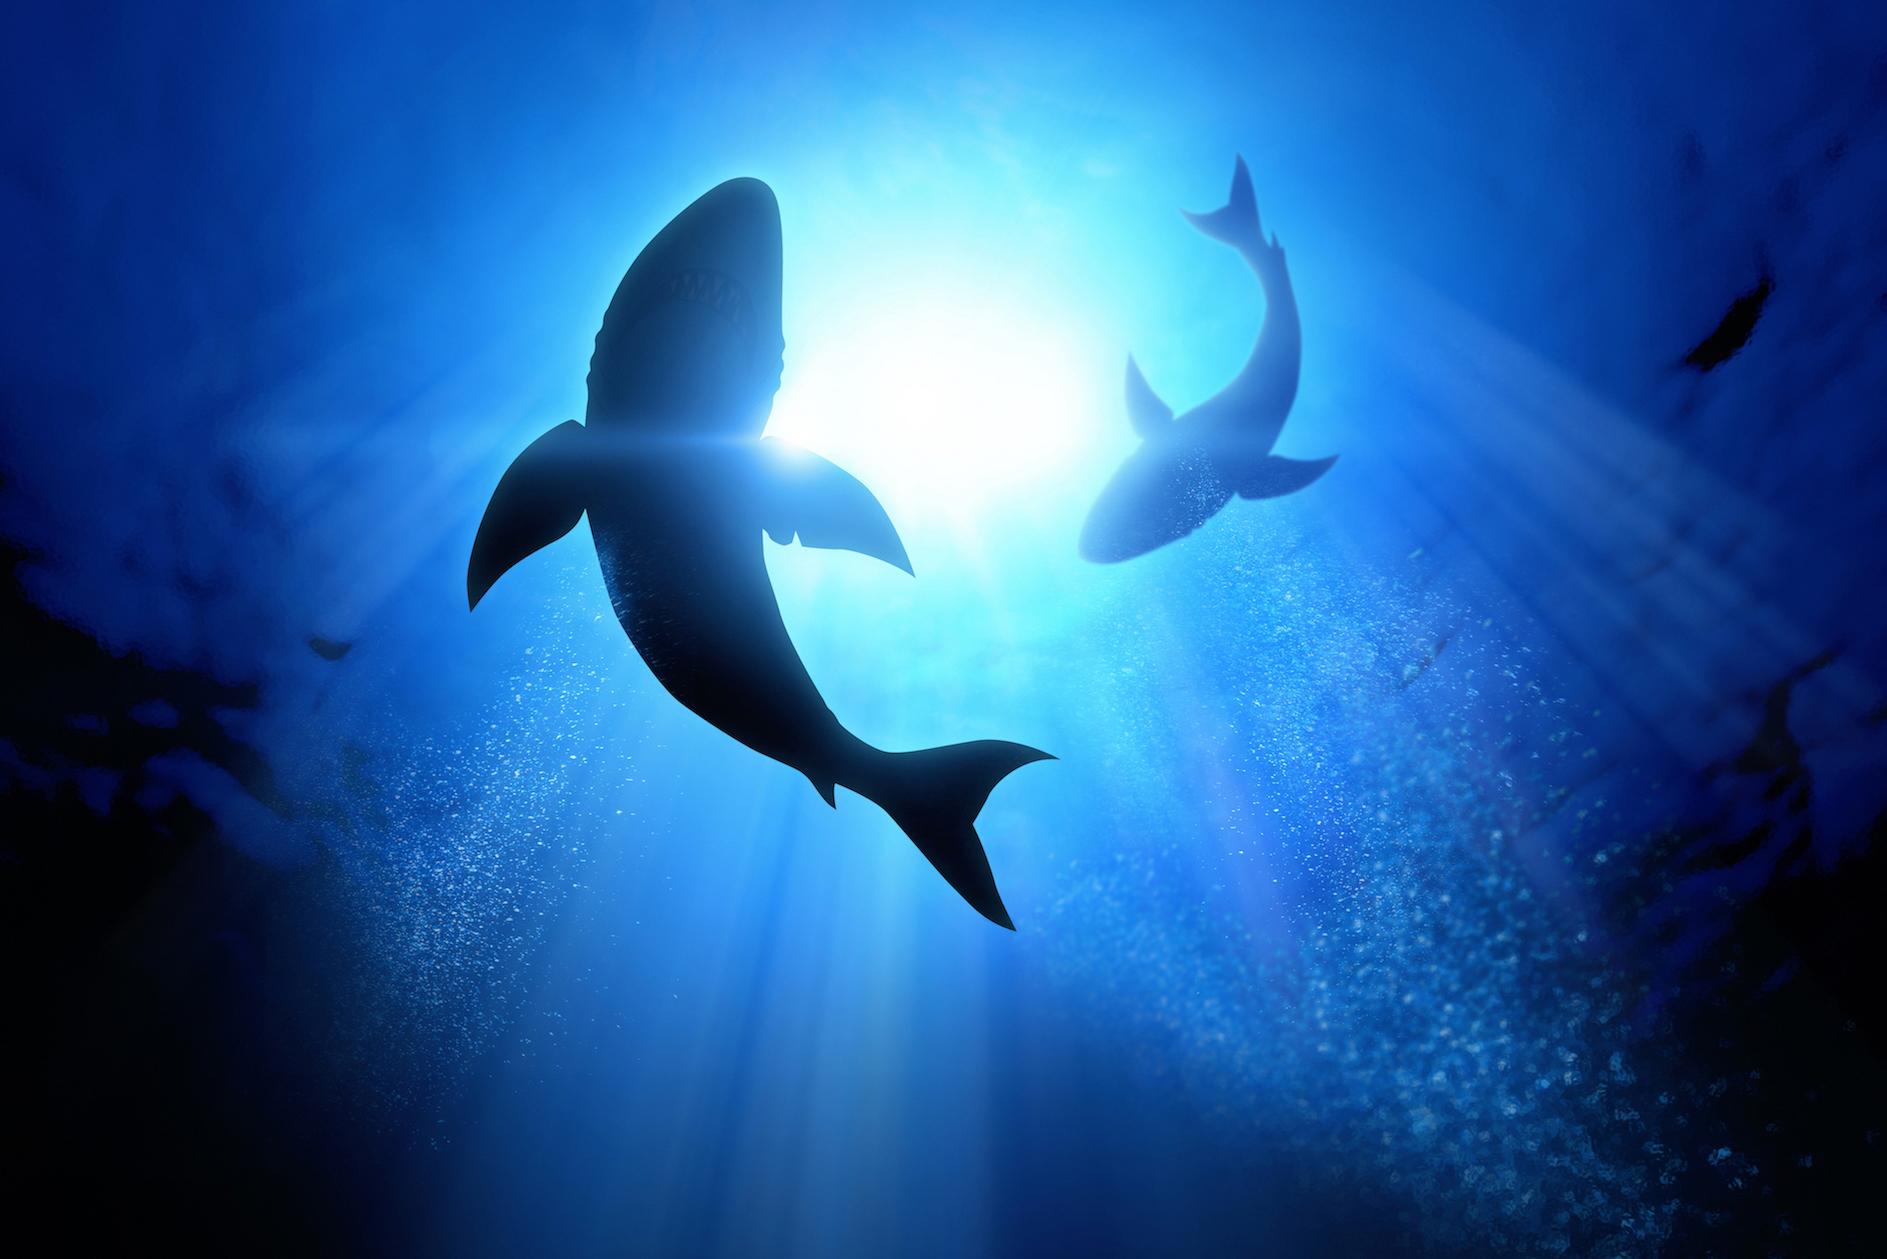 Sharks can detect your heartbeat in the water and can respond to the heartbeat of their prey through their super-sensitive electro-sensory organs.